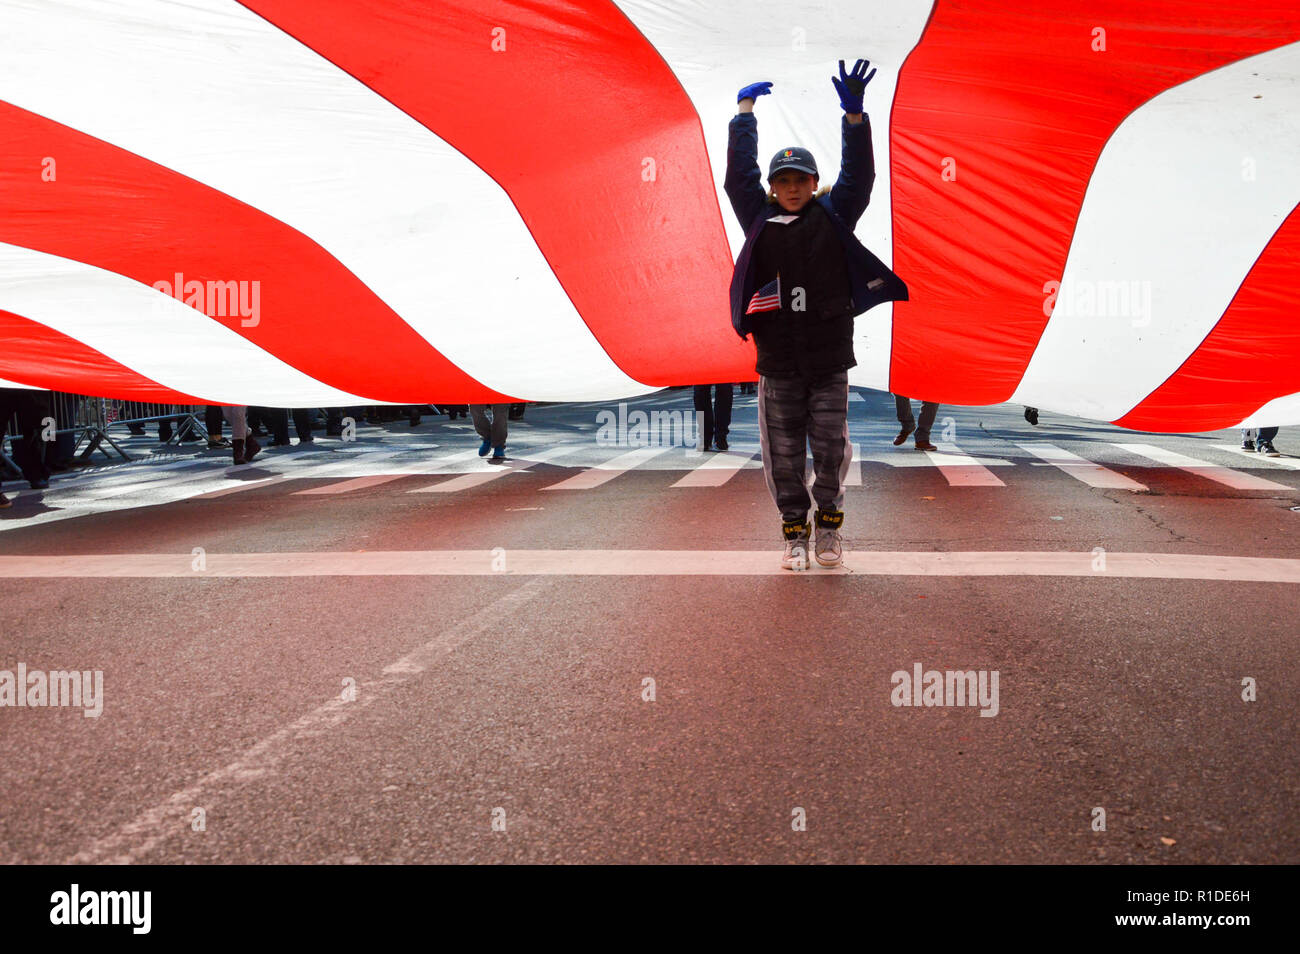 Manhattan, New York, USA. 11th Nov, 2018. A kid seen under a huge flag during the parade. Thousands from more than 300 units in the Armed Forces took part in the Annual Veterans Day Parade. The Veterans Day Parade took place along the 5th Avenue in New York City honoring the service of those who've served in the U.S. Armed Forces. Credit: Ryan Rahman/SOPA Images/ZUMA Wire/Alamy Live News - Stock Image